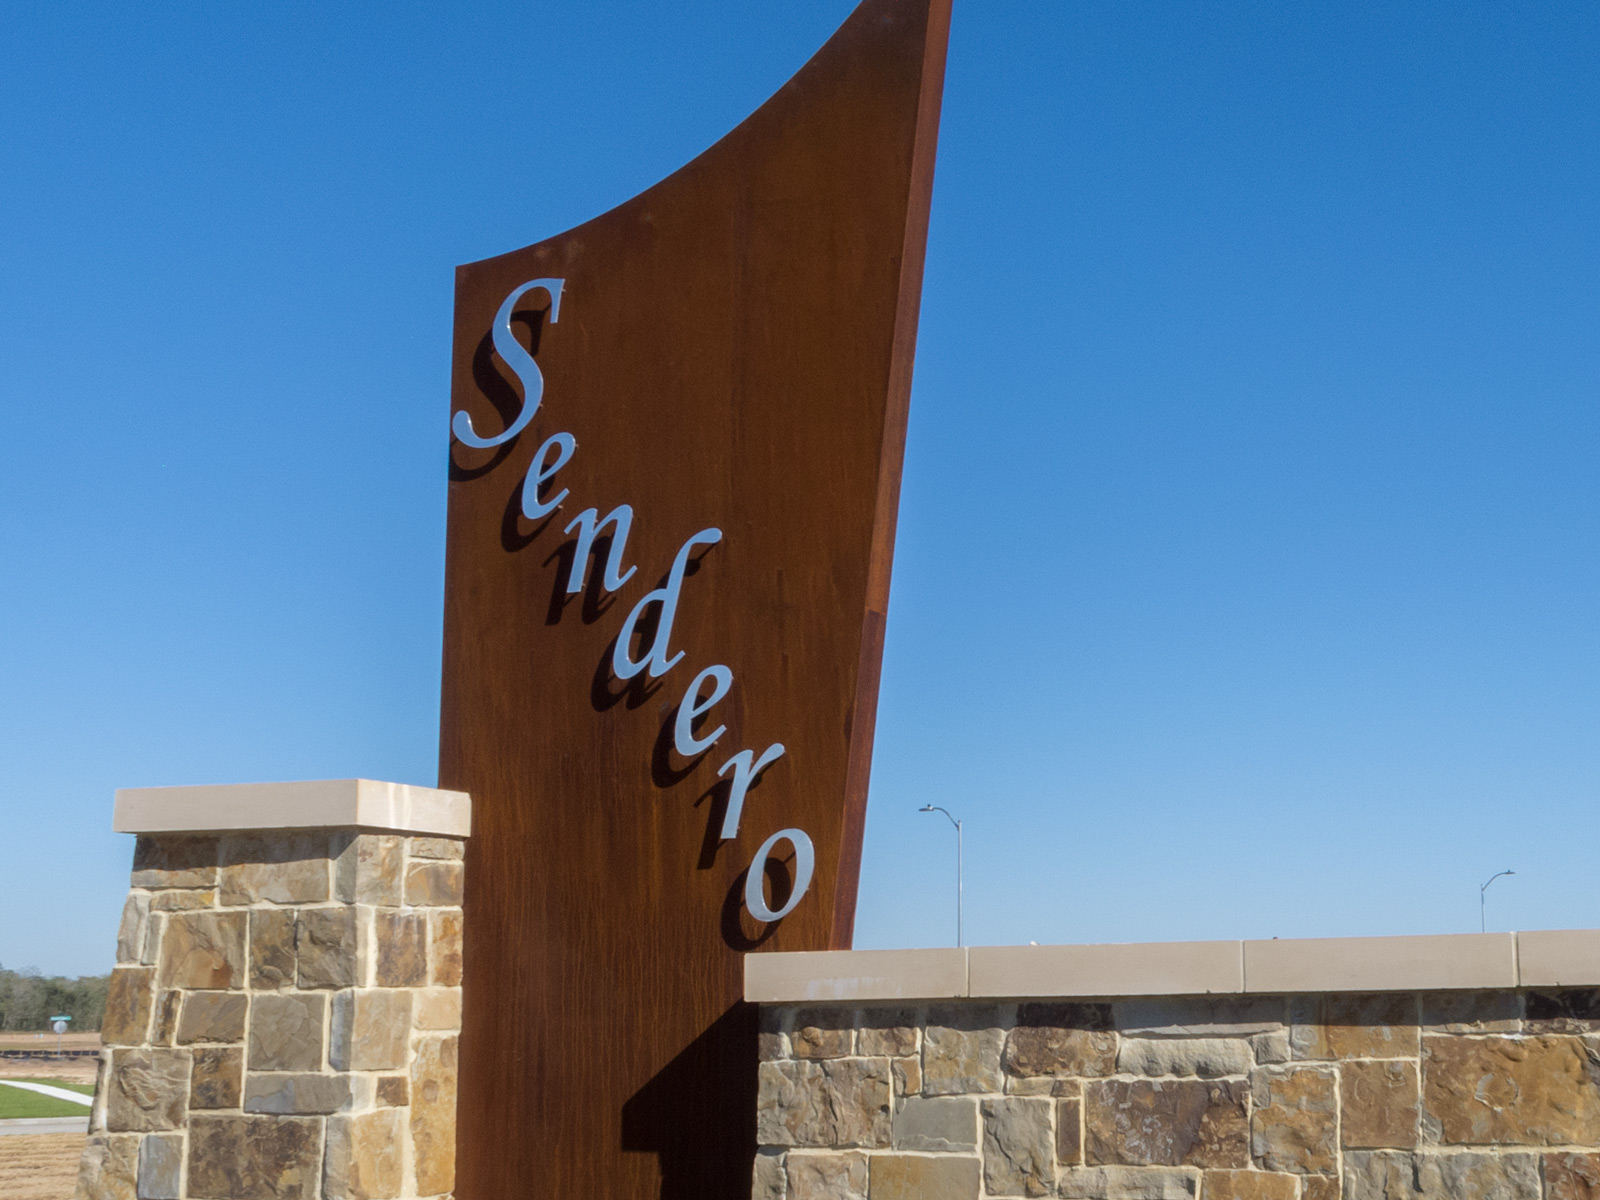 Close up view of custom fabricated, weathering steel sign structure with polished stainless steel dimensional letters.